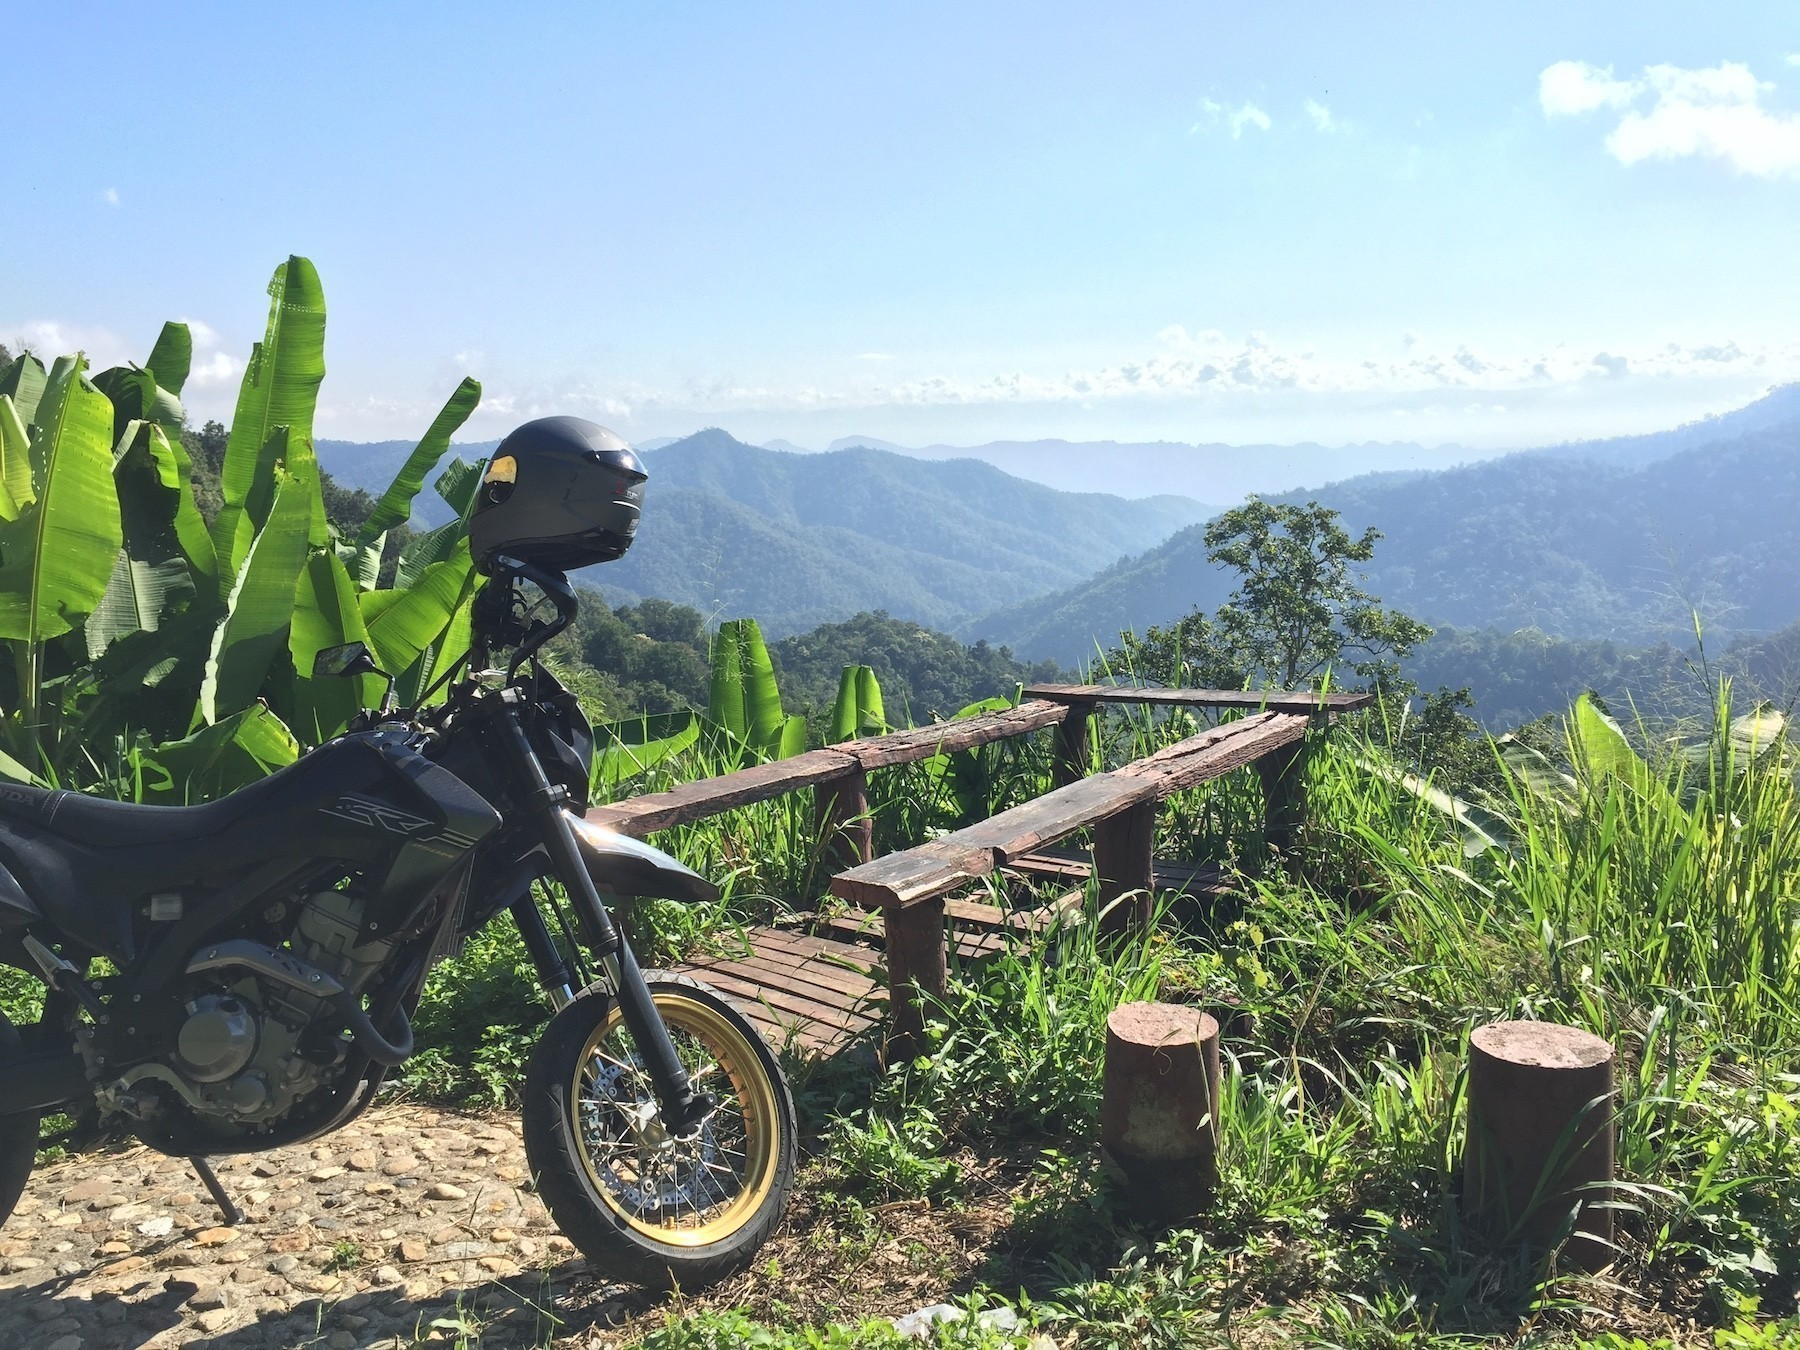 Riding Motorcycles in Northern Thailand